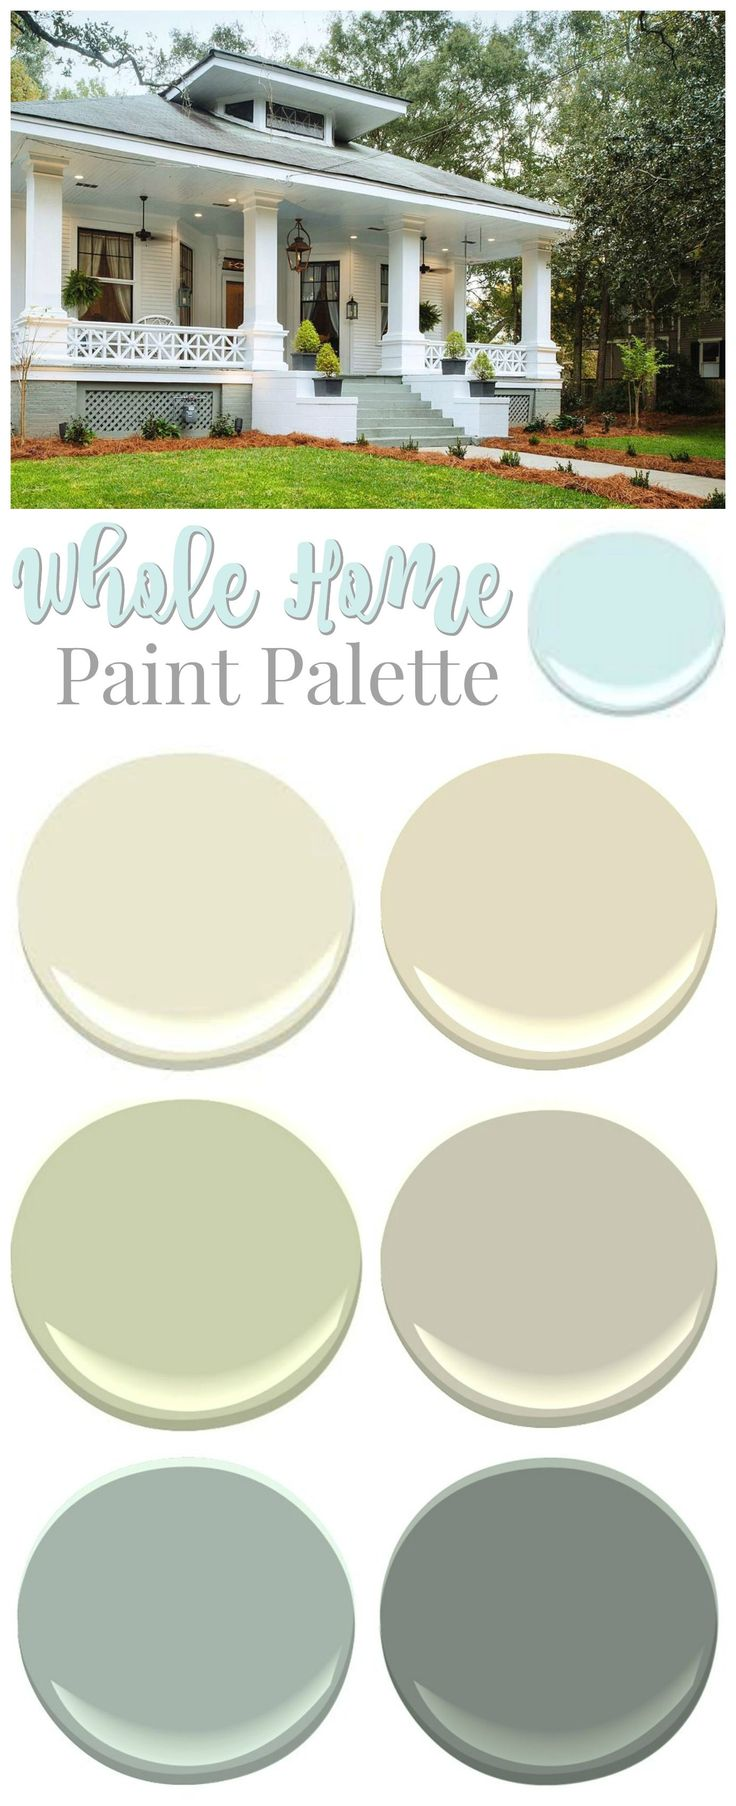 Classic 1906 Craftsman fixer upper home makeover - Full paint palette color sources - perfect for and open concept home, from vintage to contemporary.